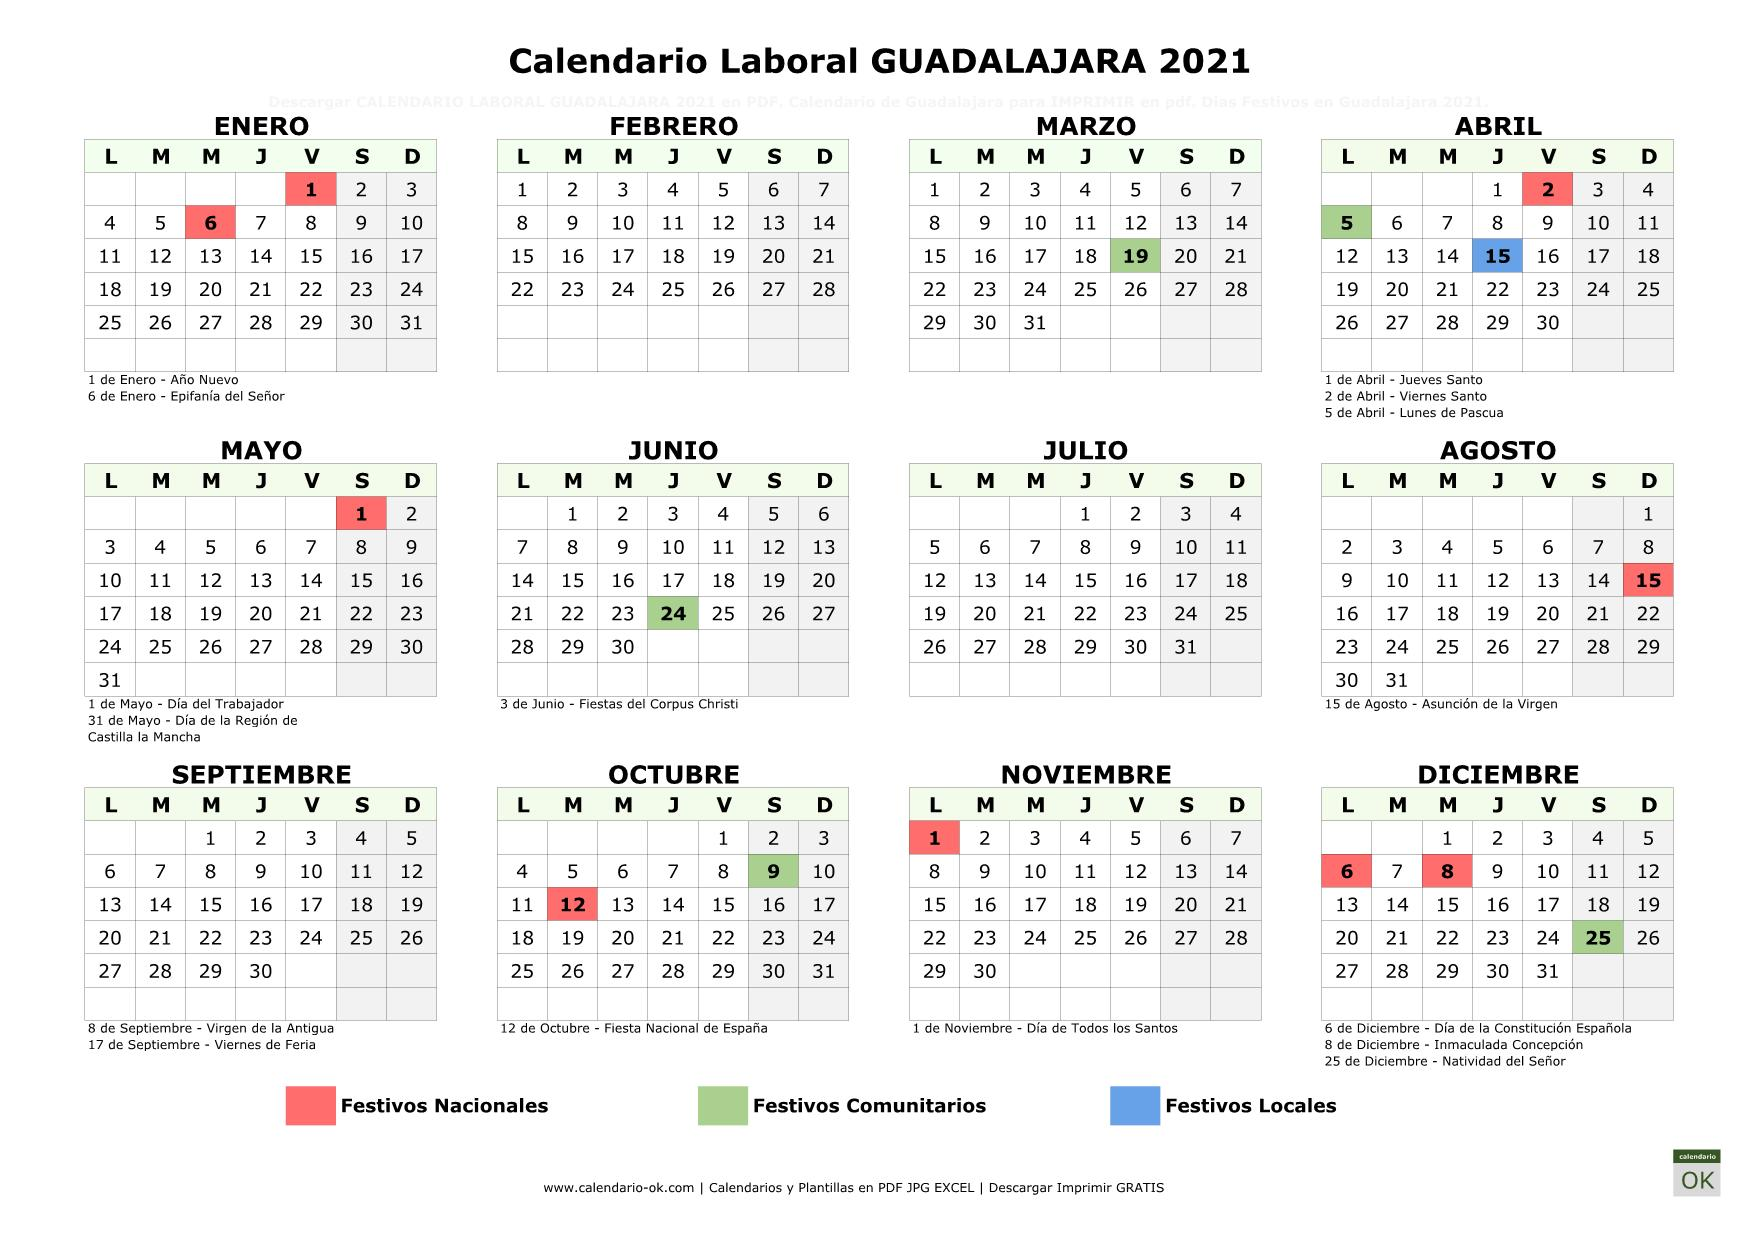 Calendario Laboral Guadalajara 2021 horizontal